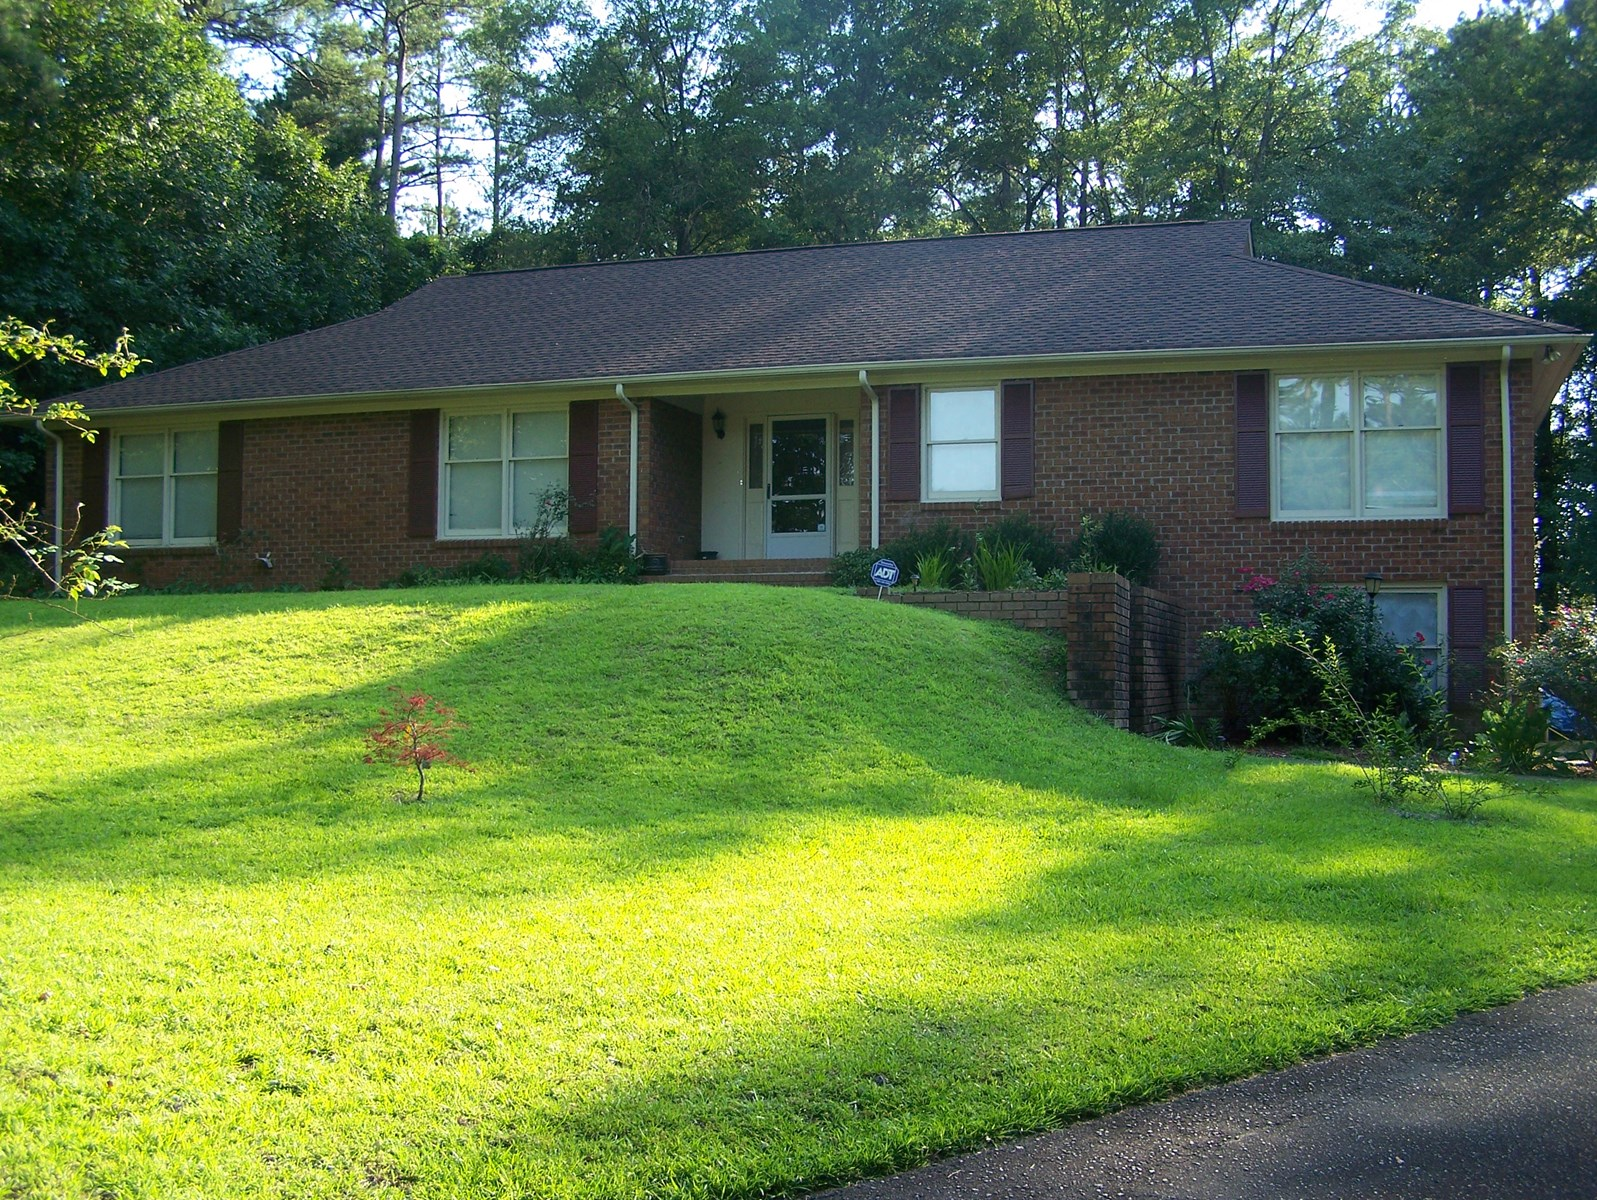 IMMACULATE, MAINTENANCE FREE HOME IN HISTORIC CAMDEN, SC